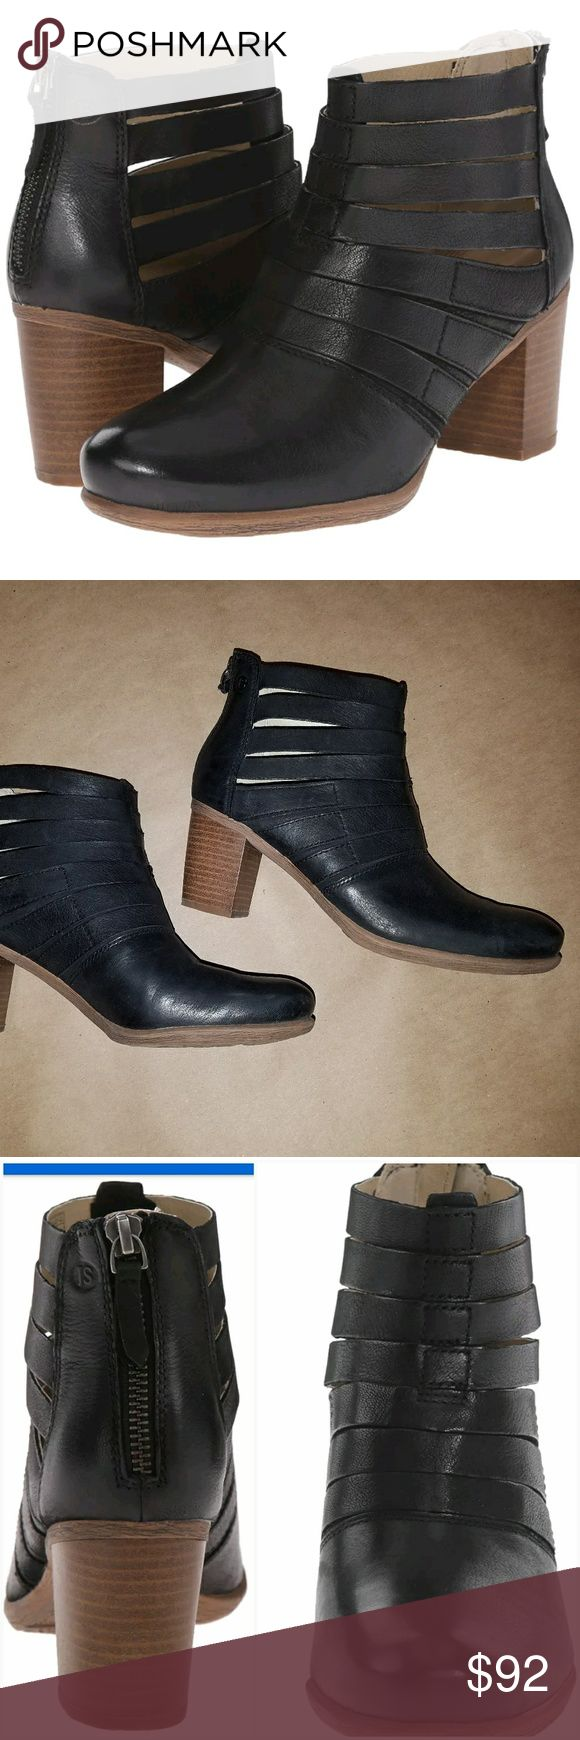 Josef Seibel Black Ankle Boots Josef Seibel Black Ankle Boots Josef Seibel Shoes Ankle Boots & Booties